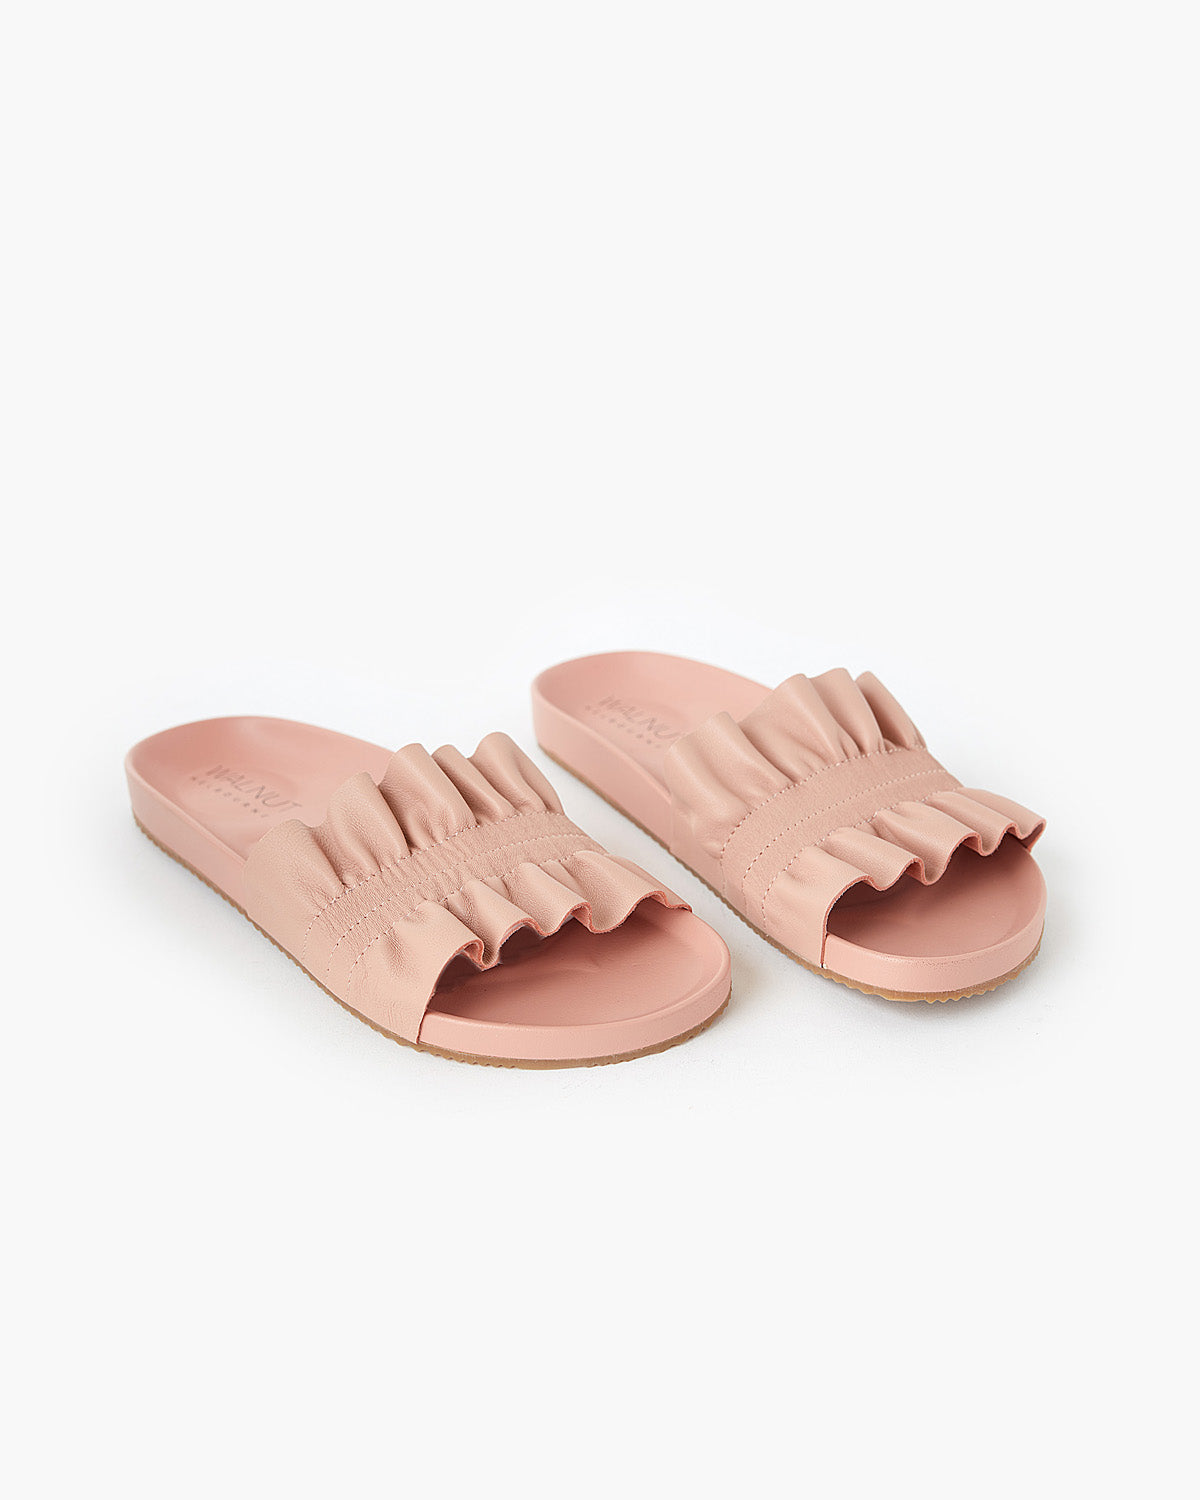 Posey Leather Slide - Peony